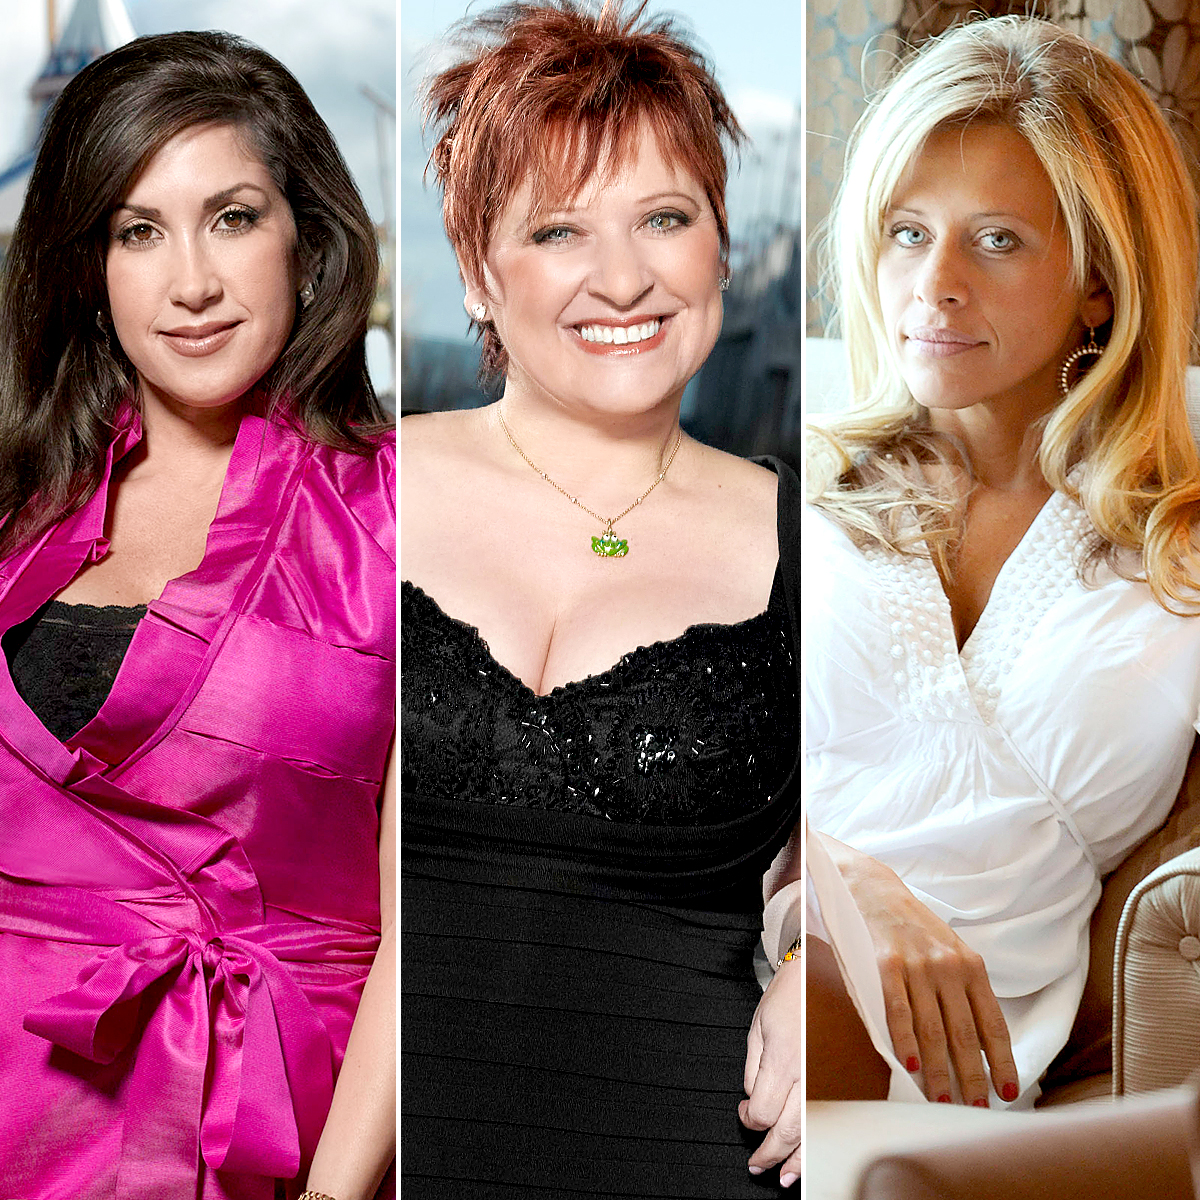 Former Real Housewives Of New Jersey